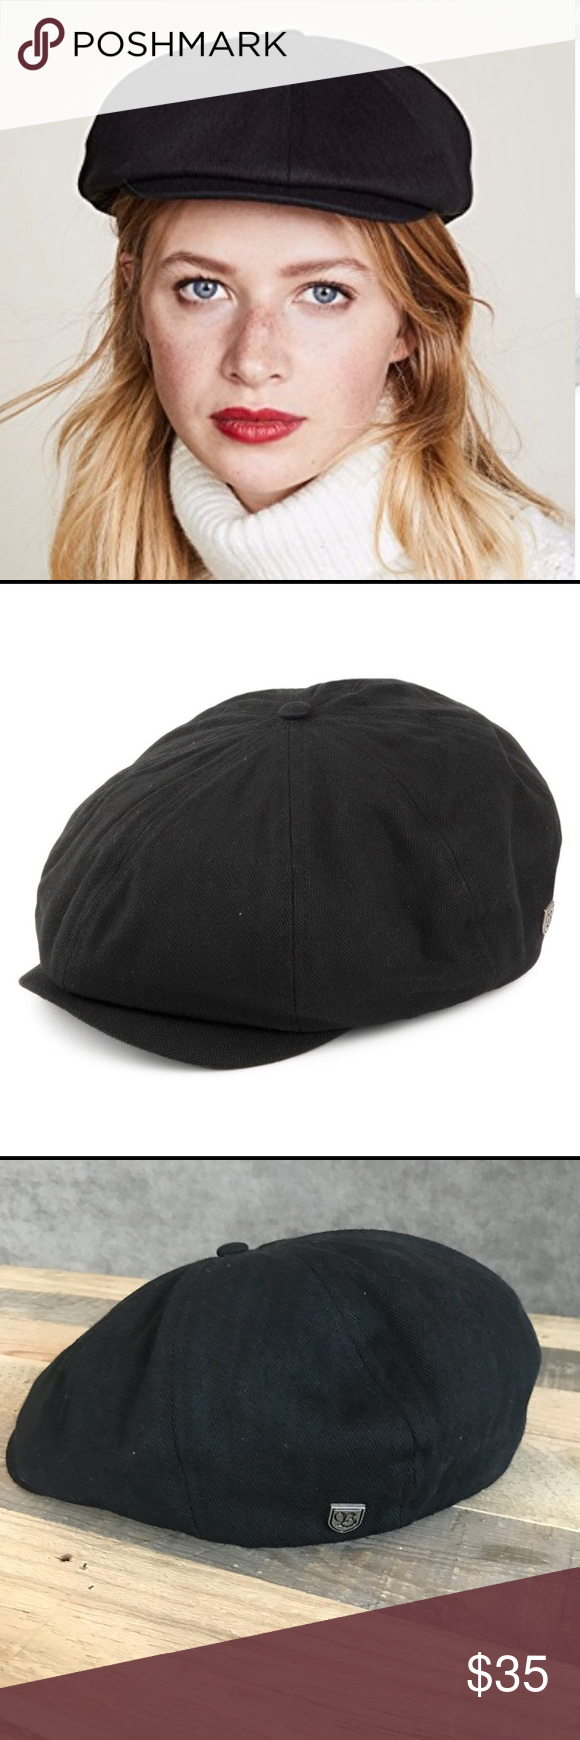 2d883aec139a3 Brixton Brood Newsboy Cap Brixton Brood Newsboy Cap size M Worn Once just  not my favorite on me Like new condition Brixton Accessories Hats